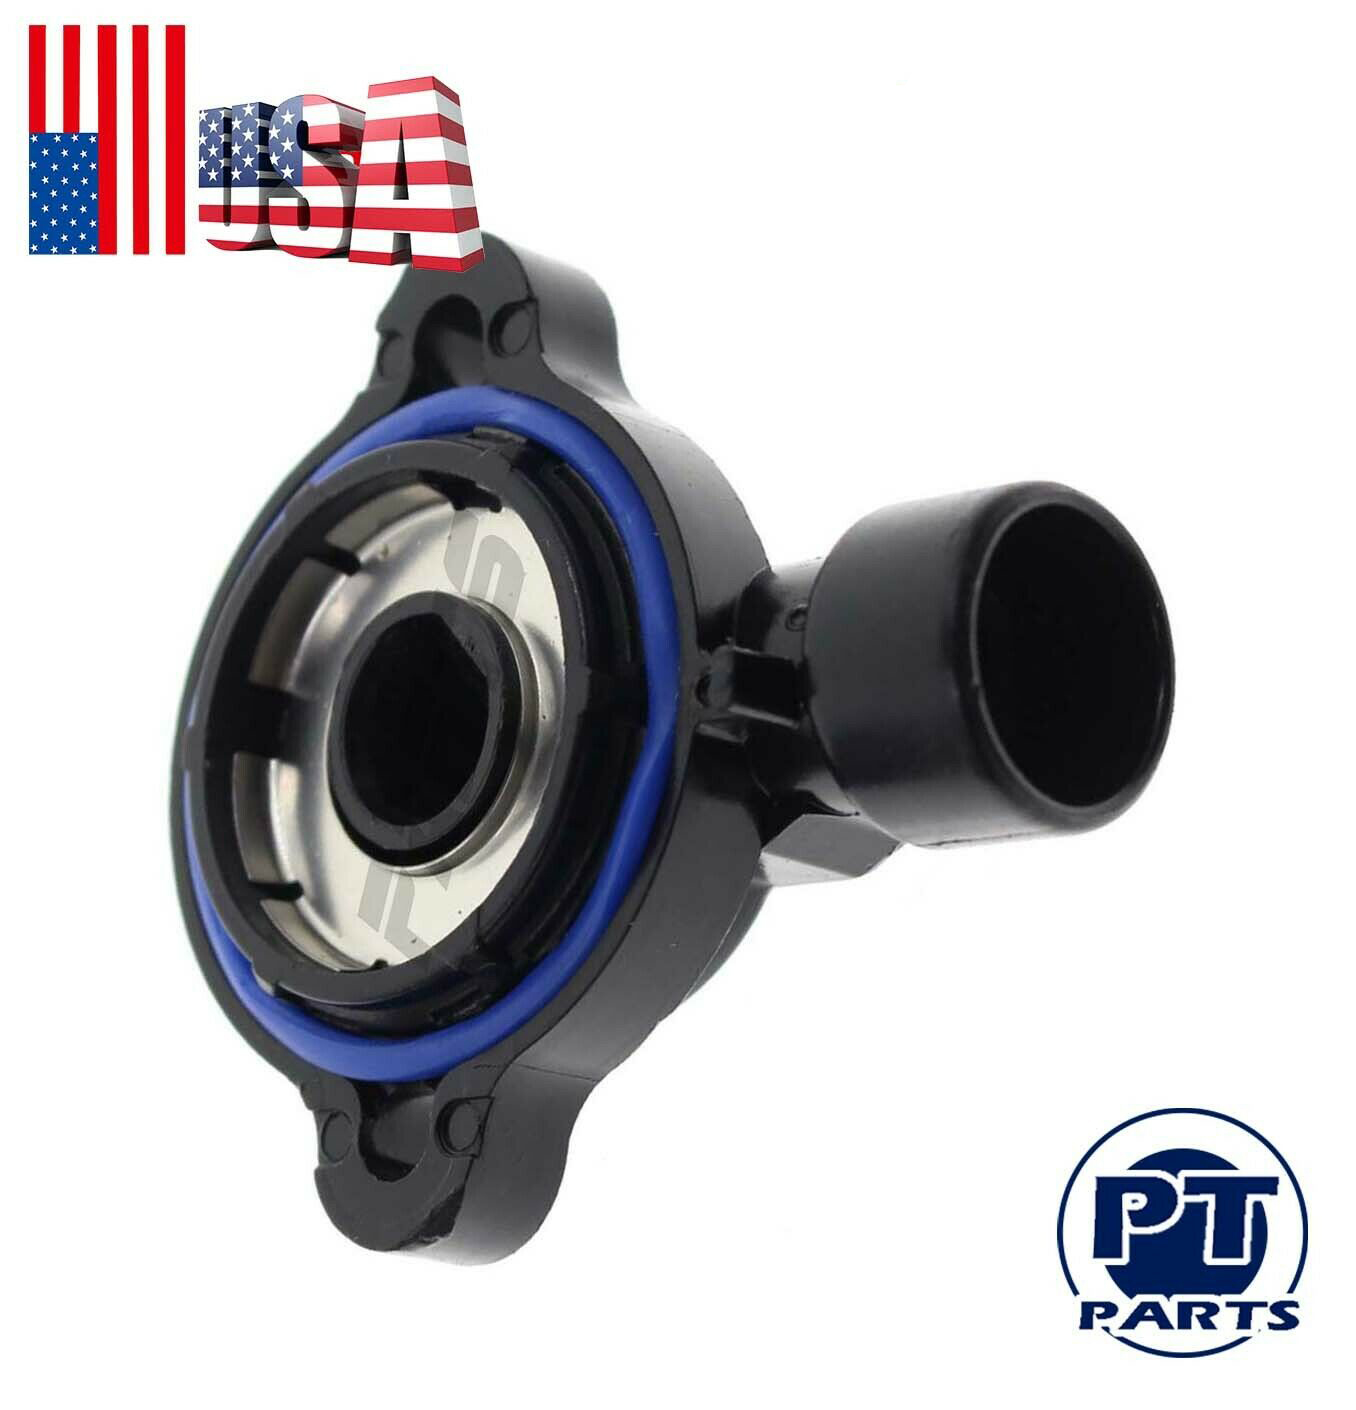 Throttle Position Sensor 8171068090 Fit For Cadillac Chevy Pickup Chevrolet